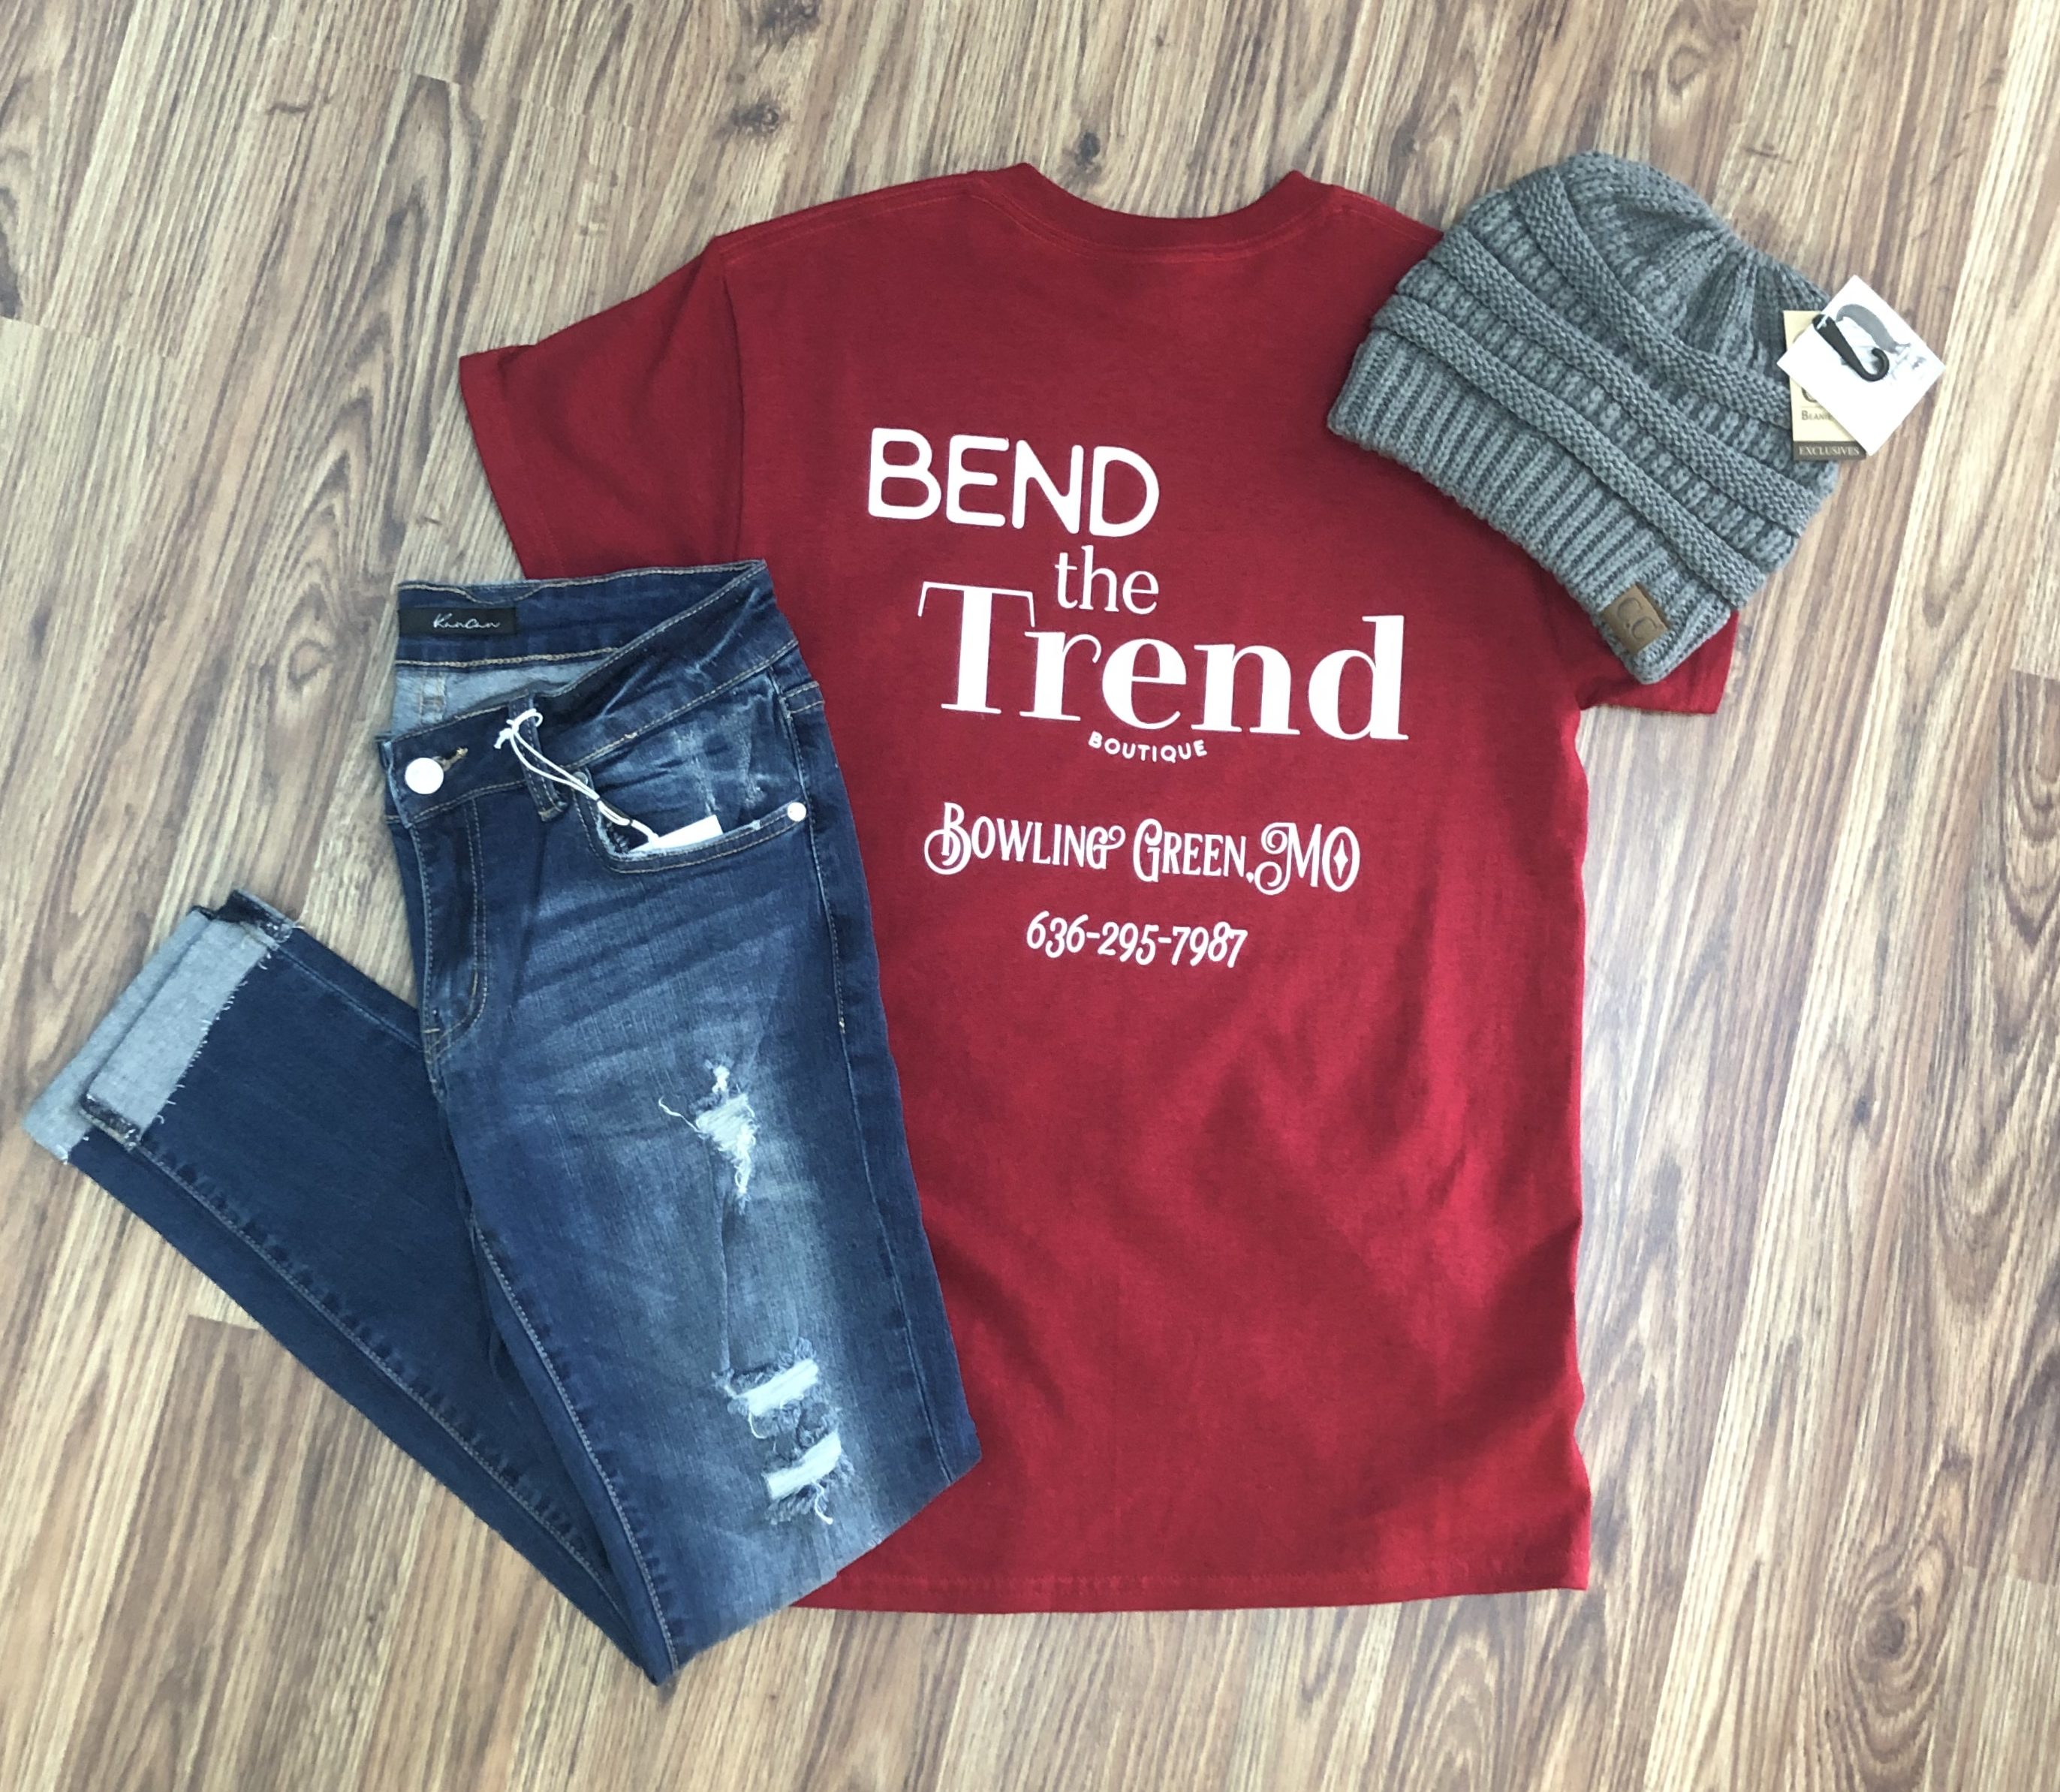 Bend the Trend Boutique